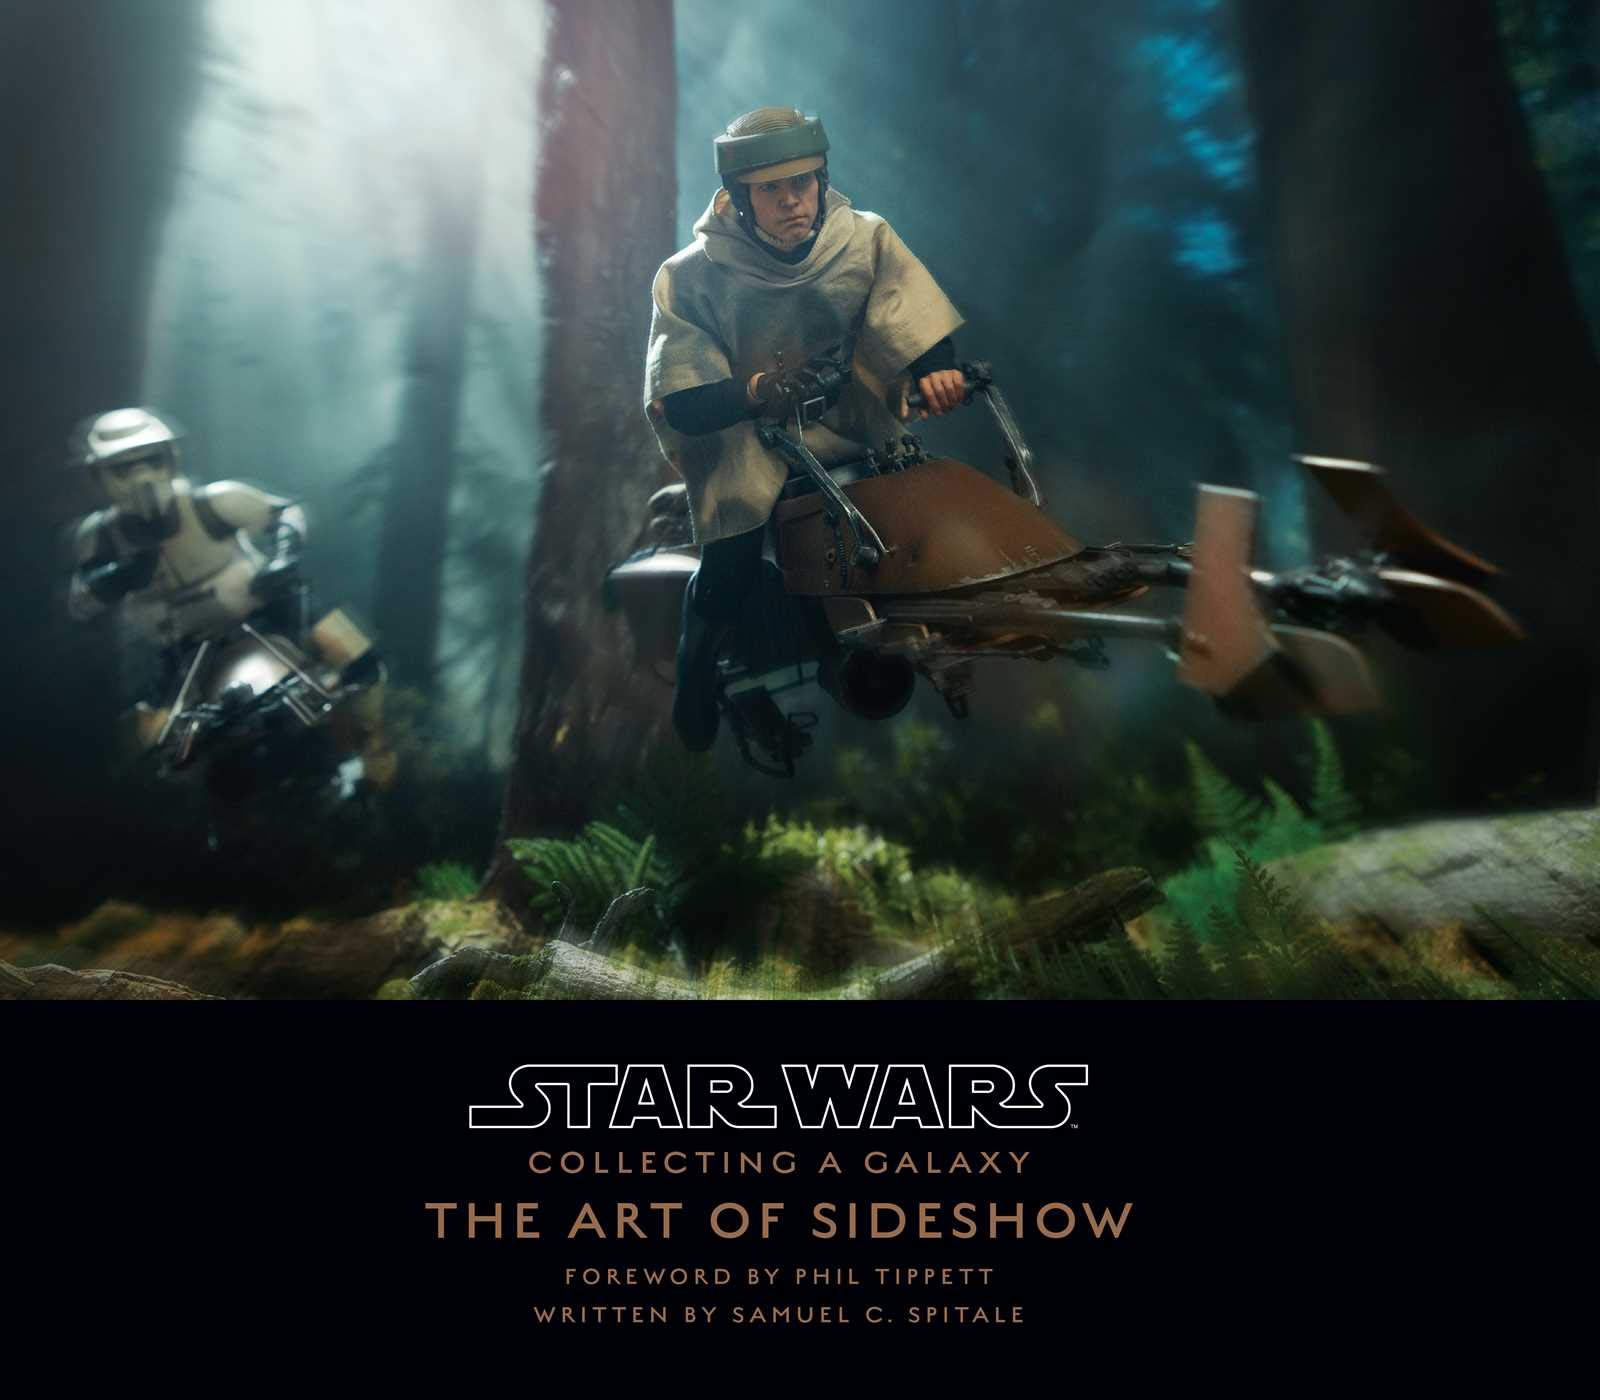 Star Wars: Collecting A Galaxy - The Art Of Sideshow